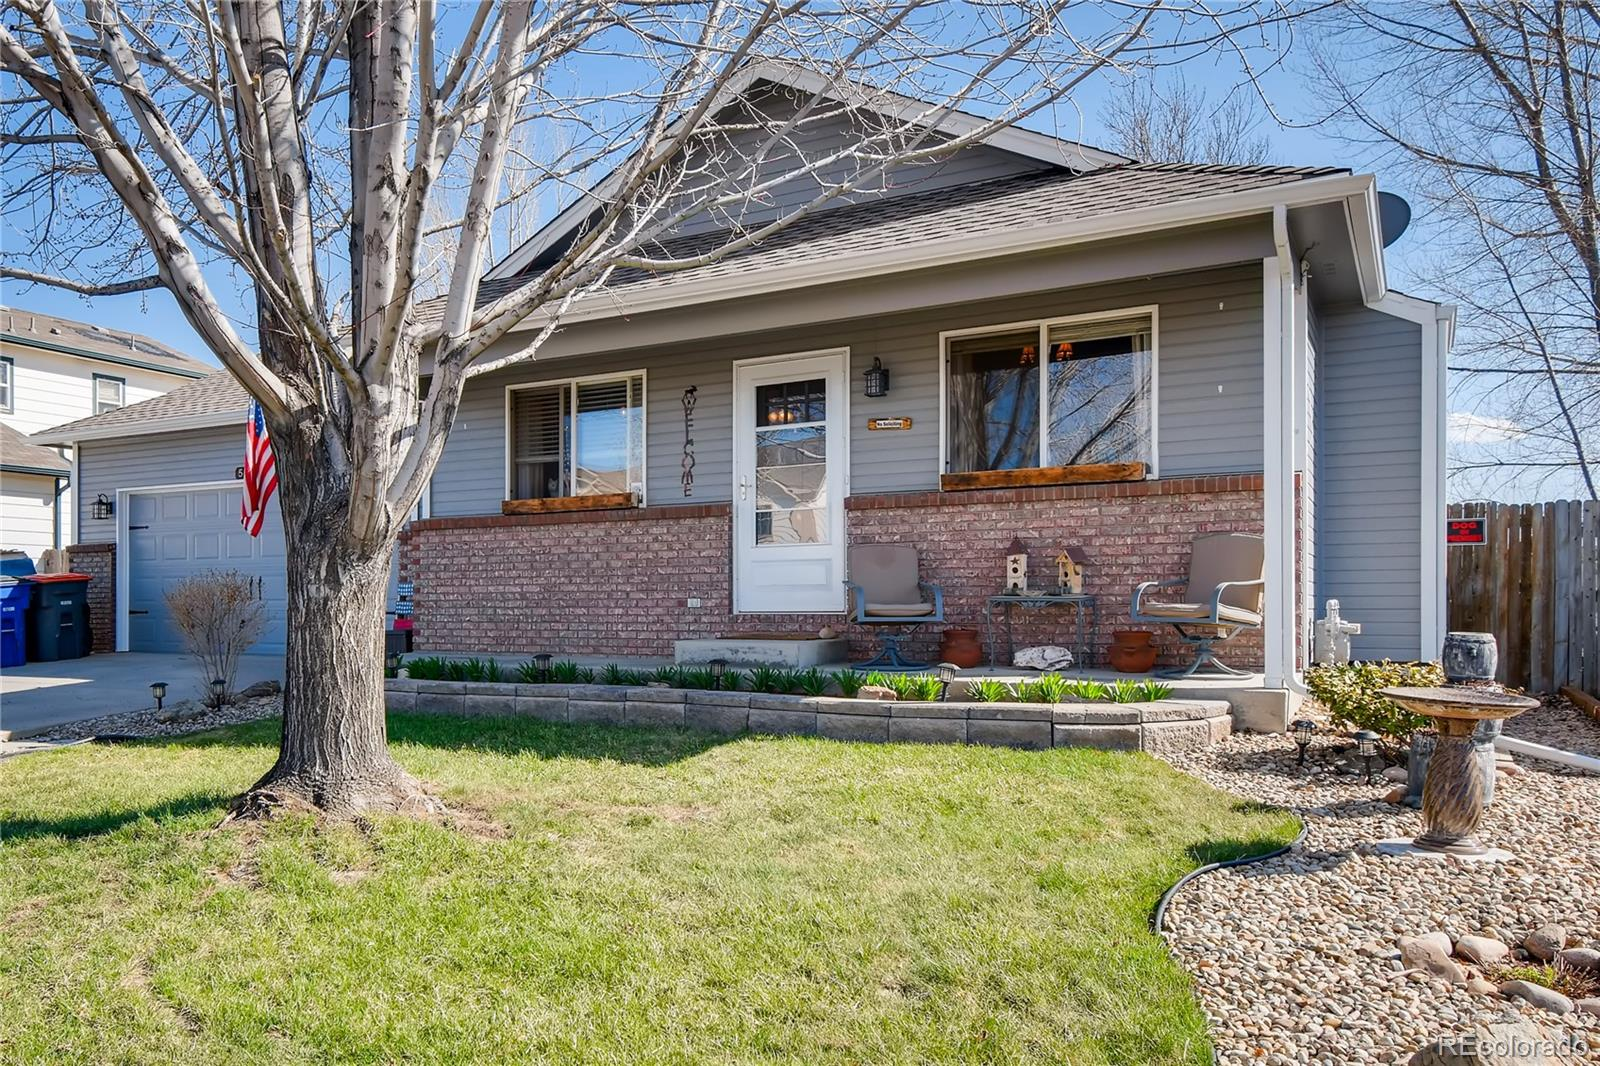 MLS# 3845561 - 3 - 524 Hawthorn Circle, Frederick, CO 80530